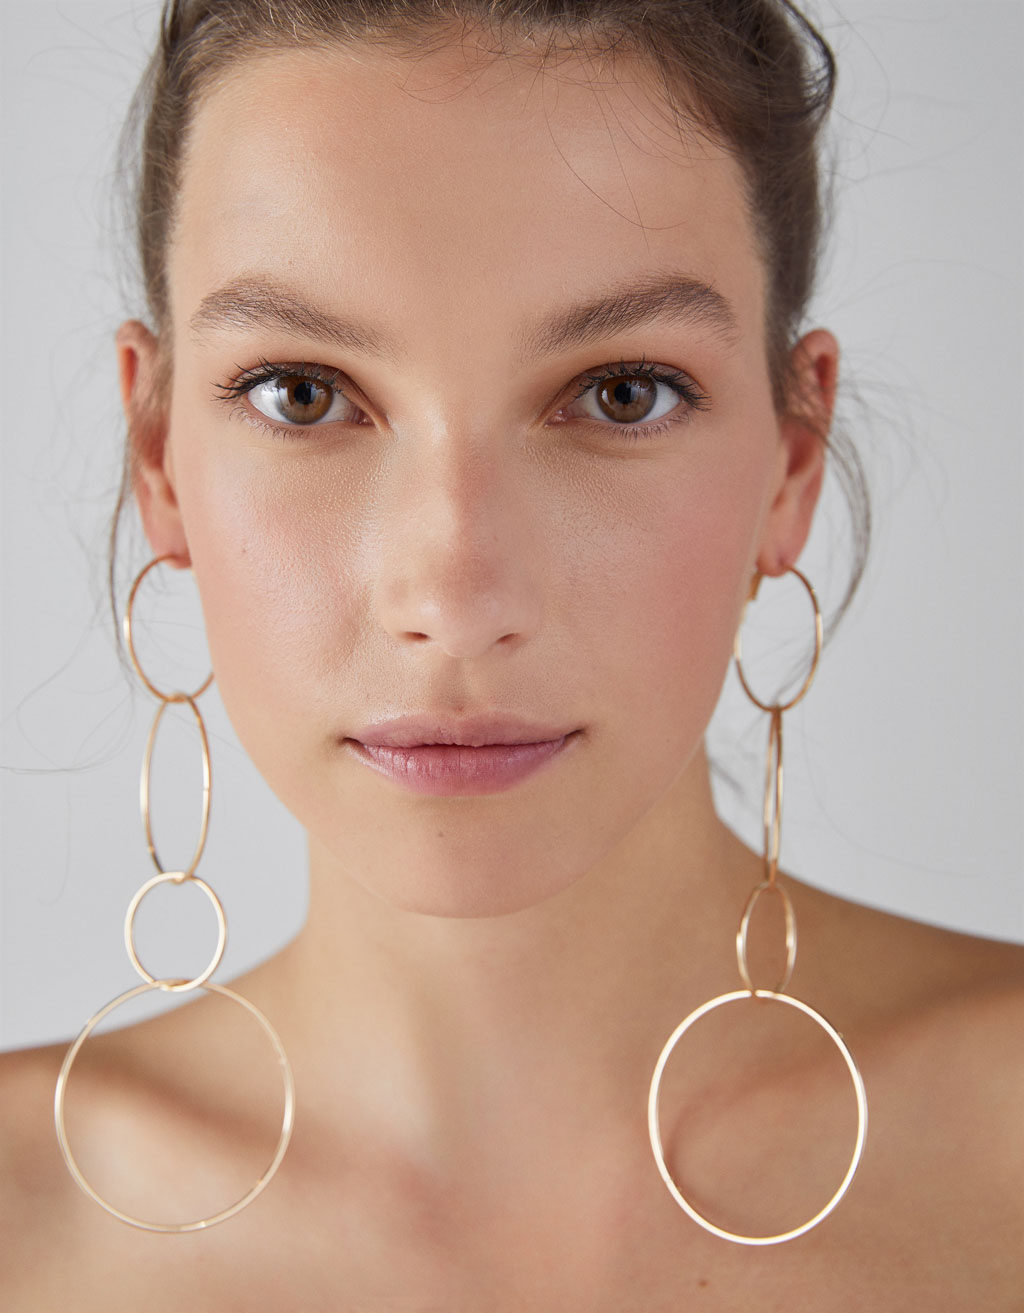 Linked hoop earrings